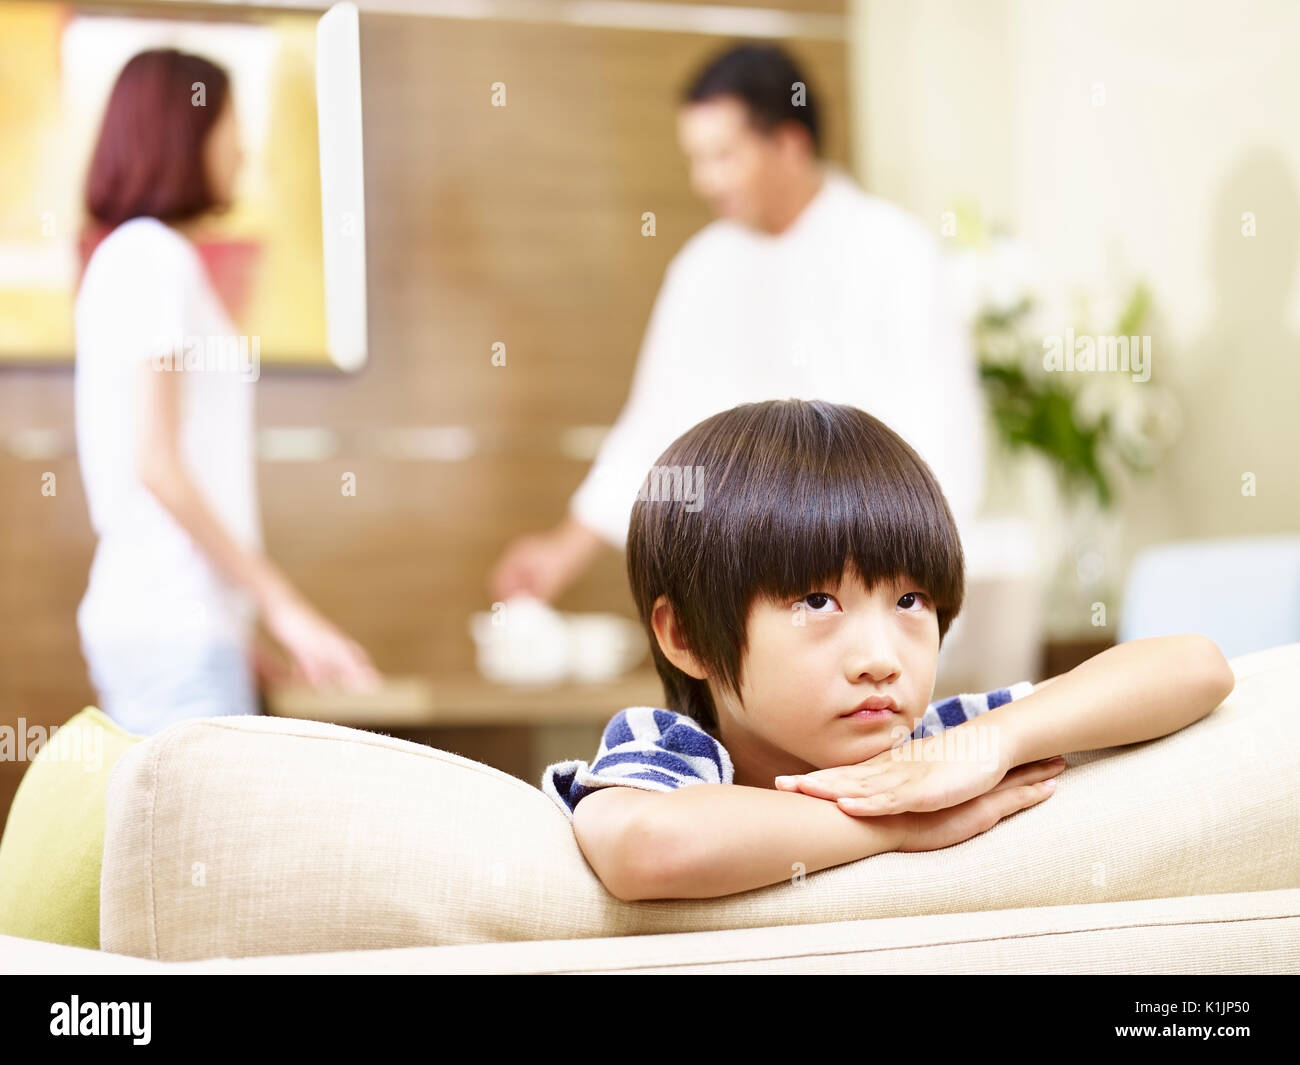 asian child appears sad and unhappy while parents quarreling in the background. - Stock Image